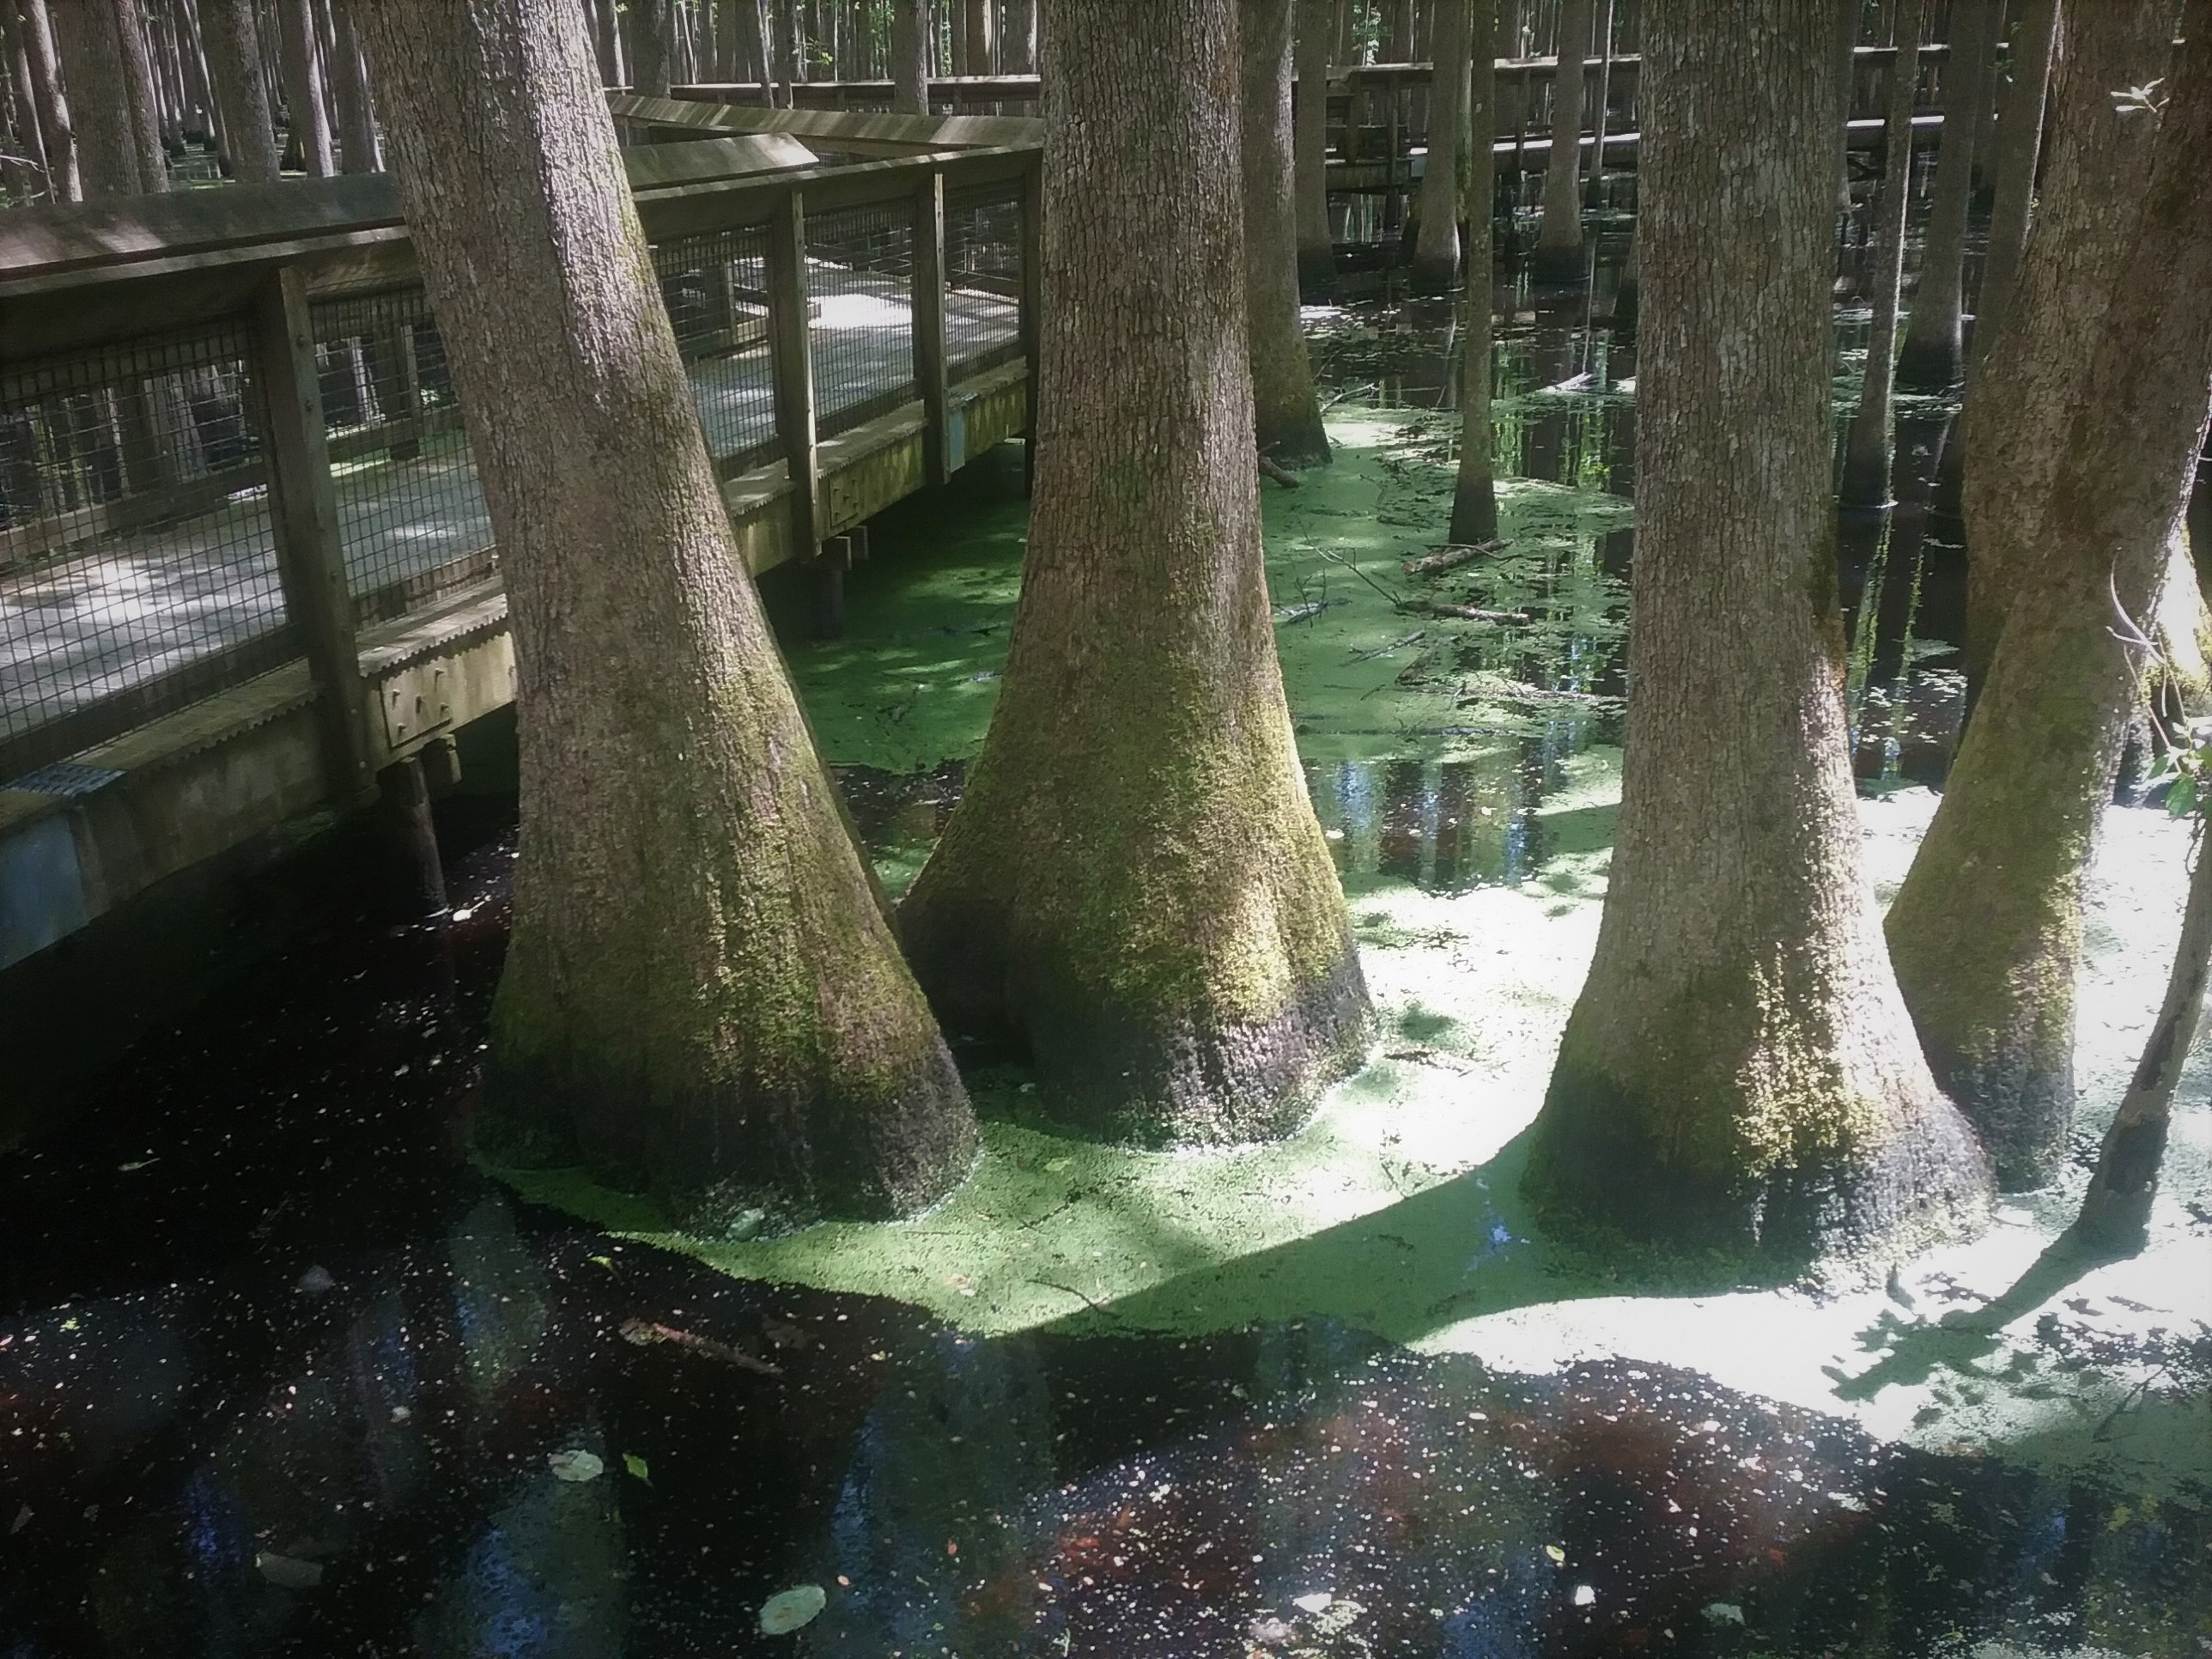 Four large water tupelo trees growing in swamp with widened bases.